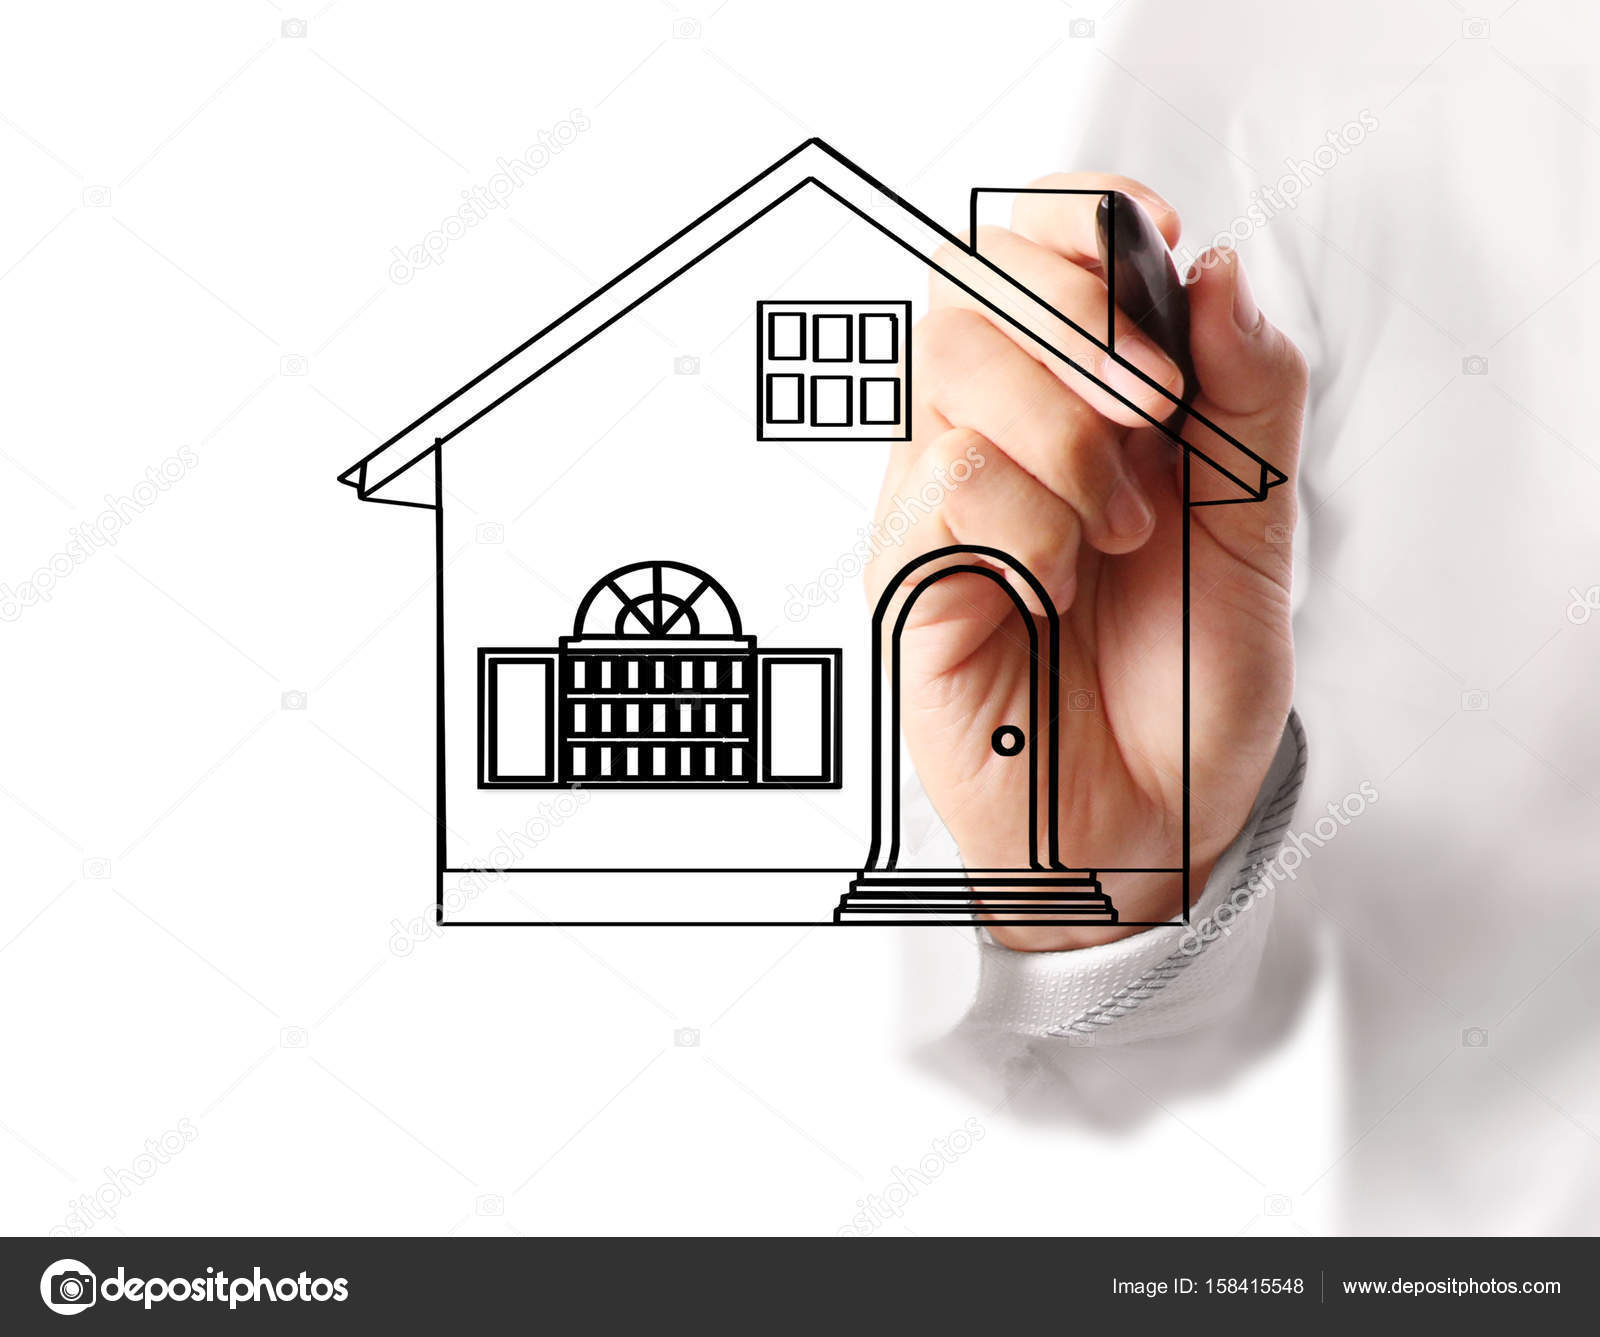 Hand drawing house model stock photo aeydenphumi 158415548 hand drawing house model stock photo ccuart Gallery